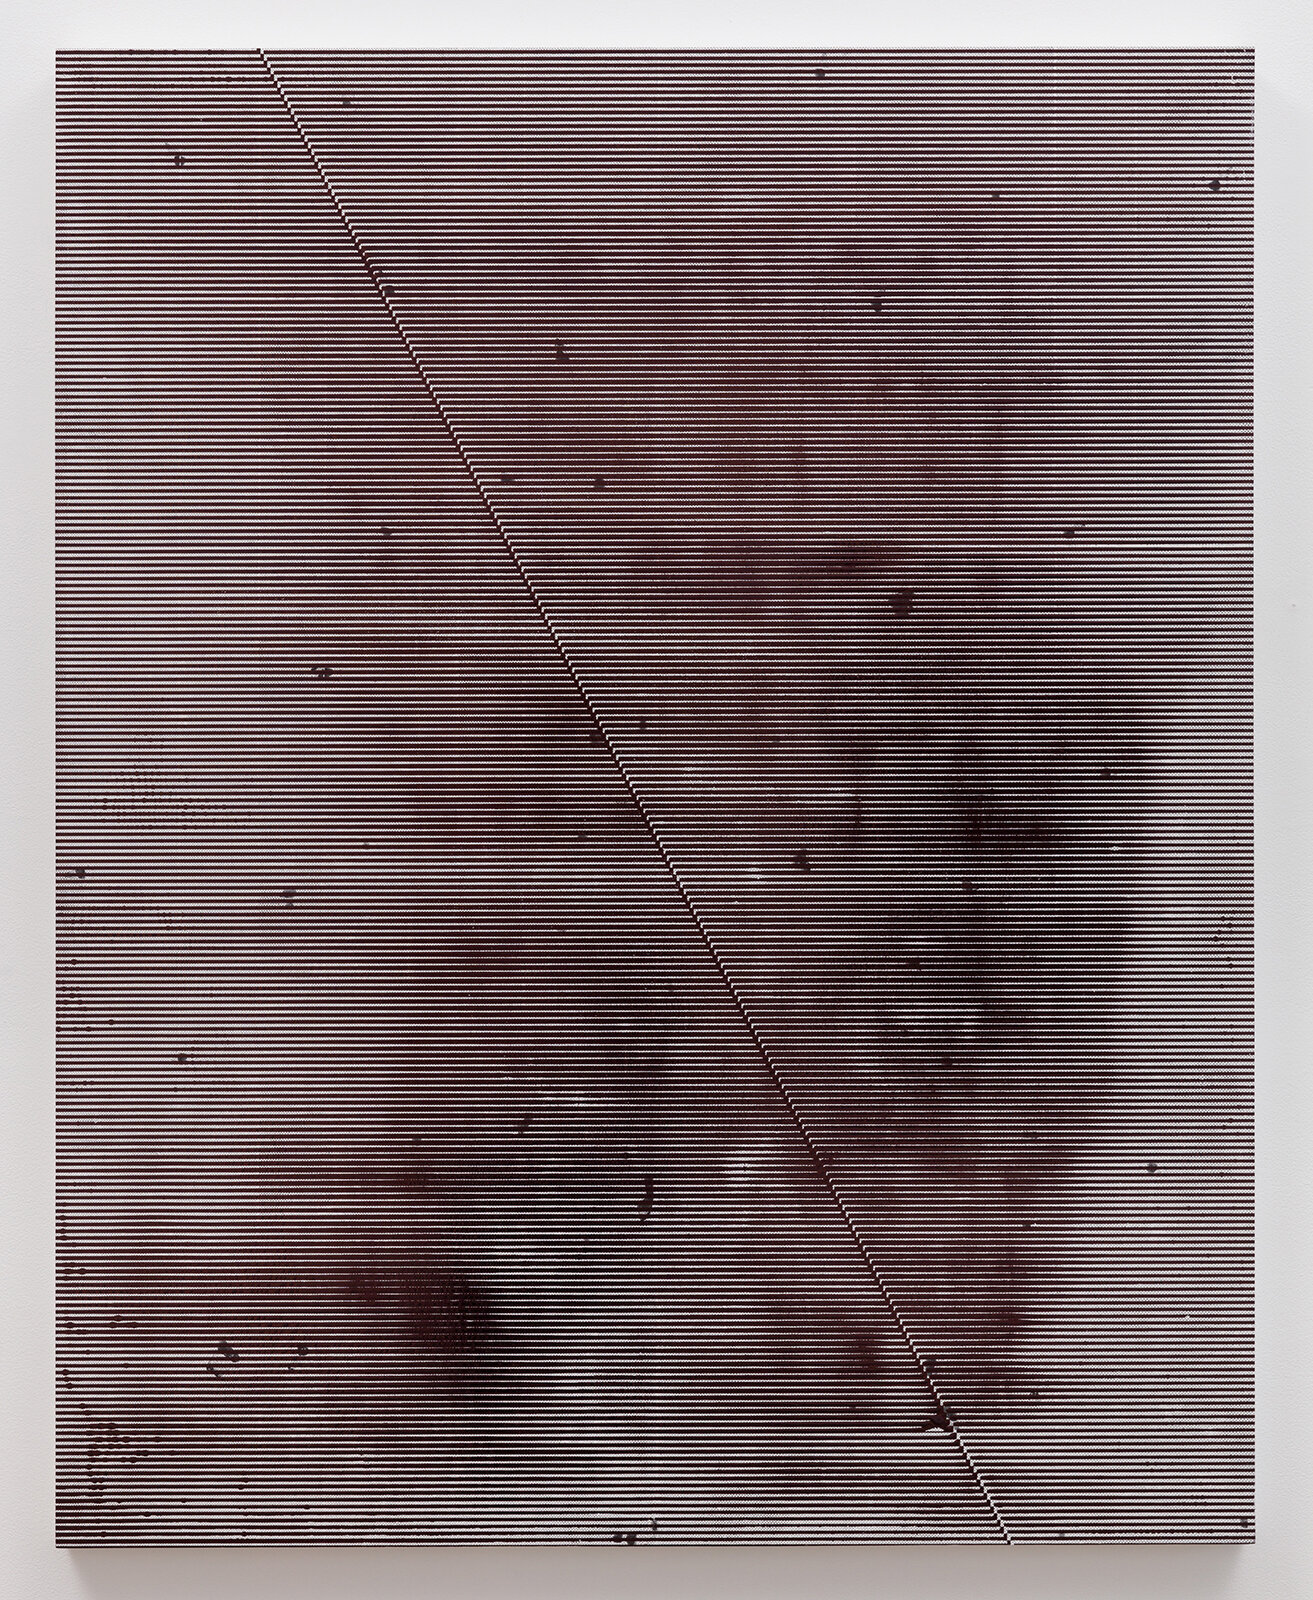 Nothing Has,  2019  50 x 40 inches  Ballpoint pen ink, toner, and gesso on panel